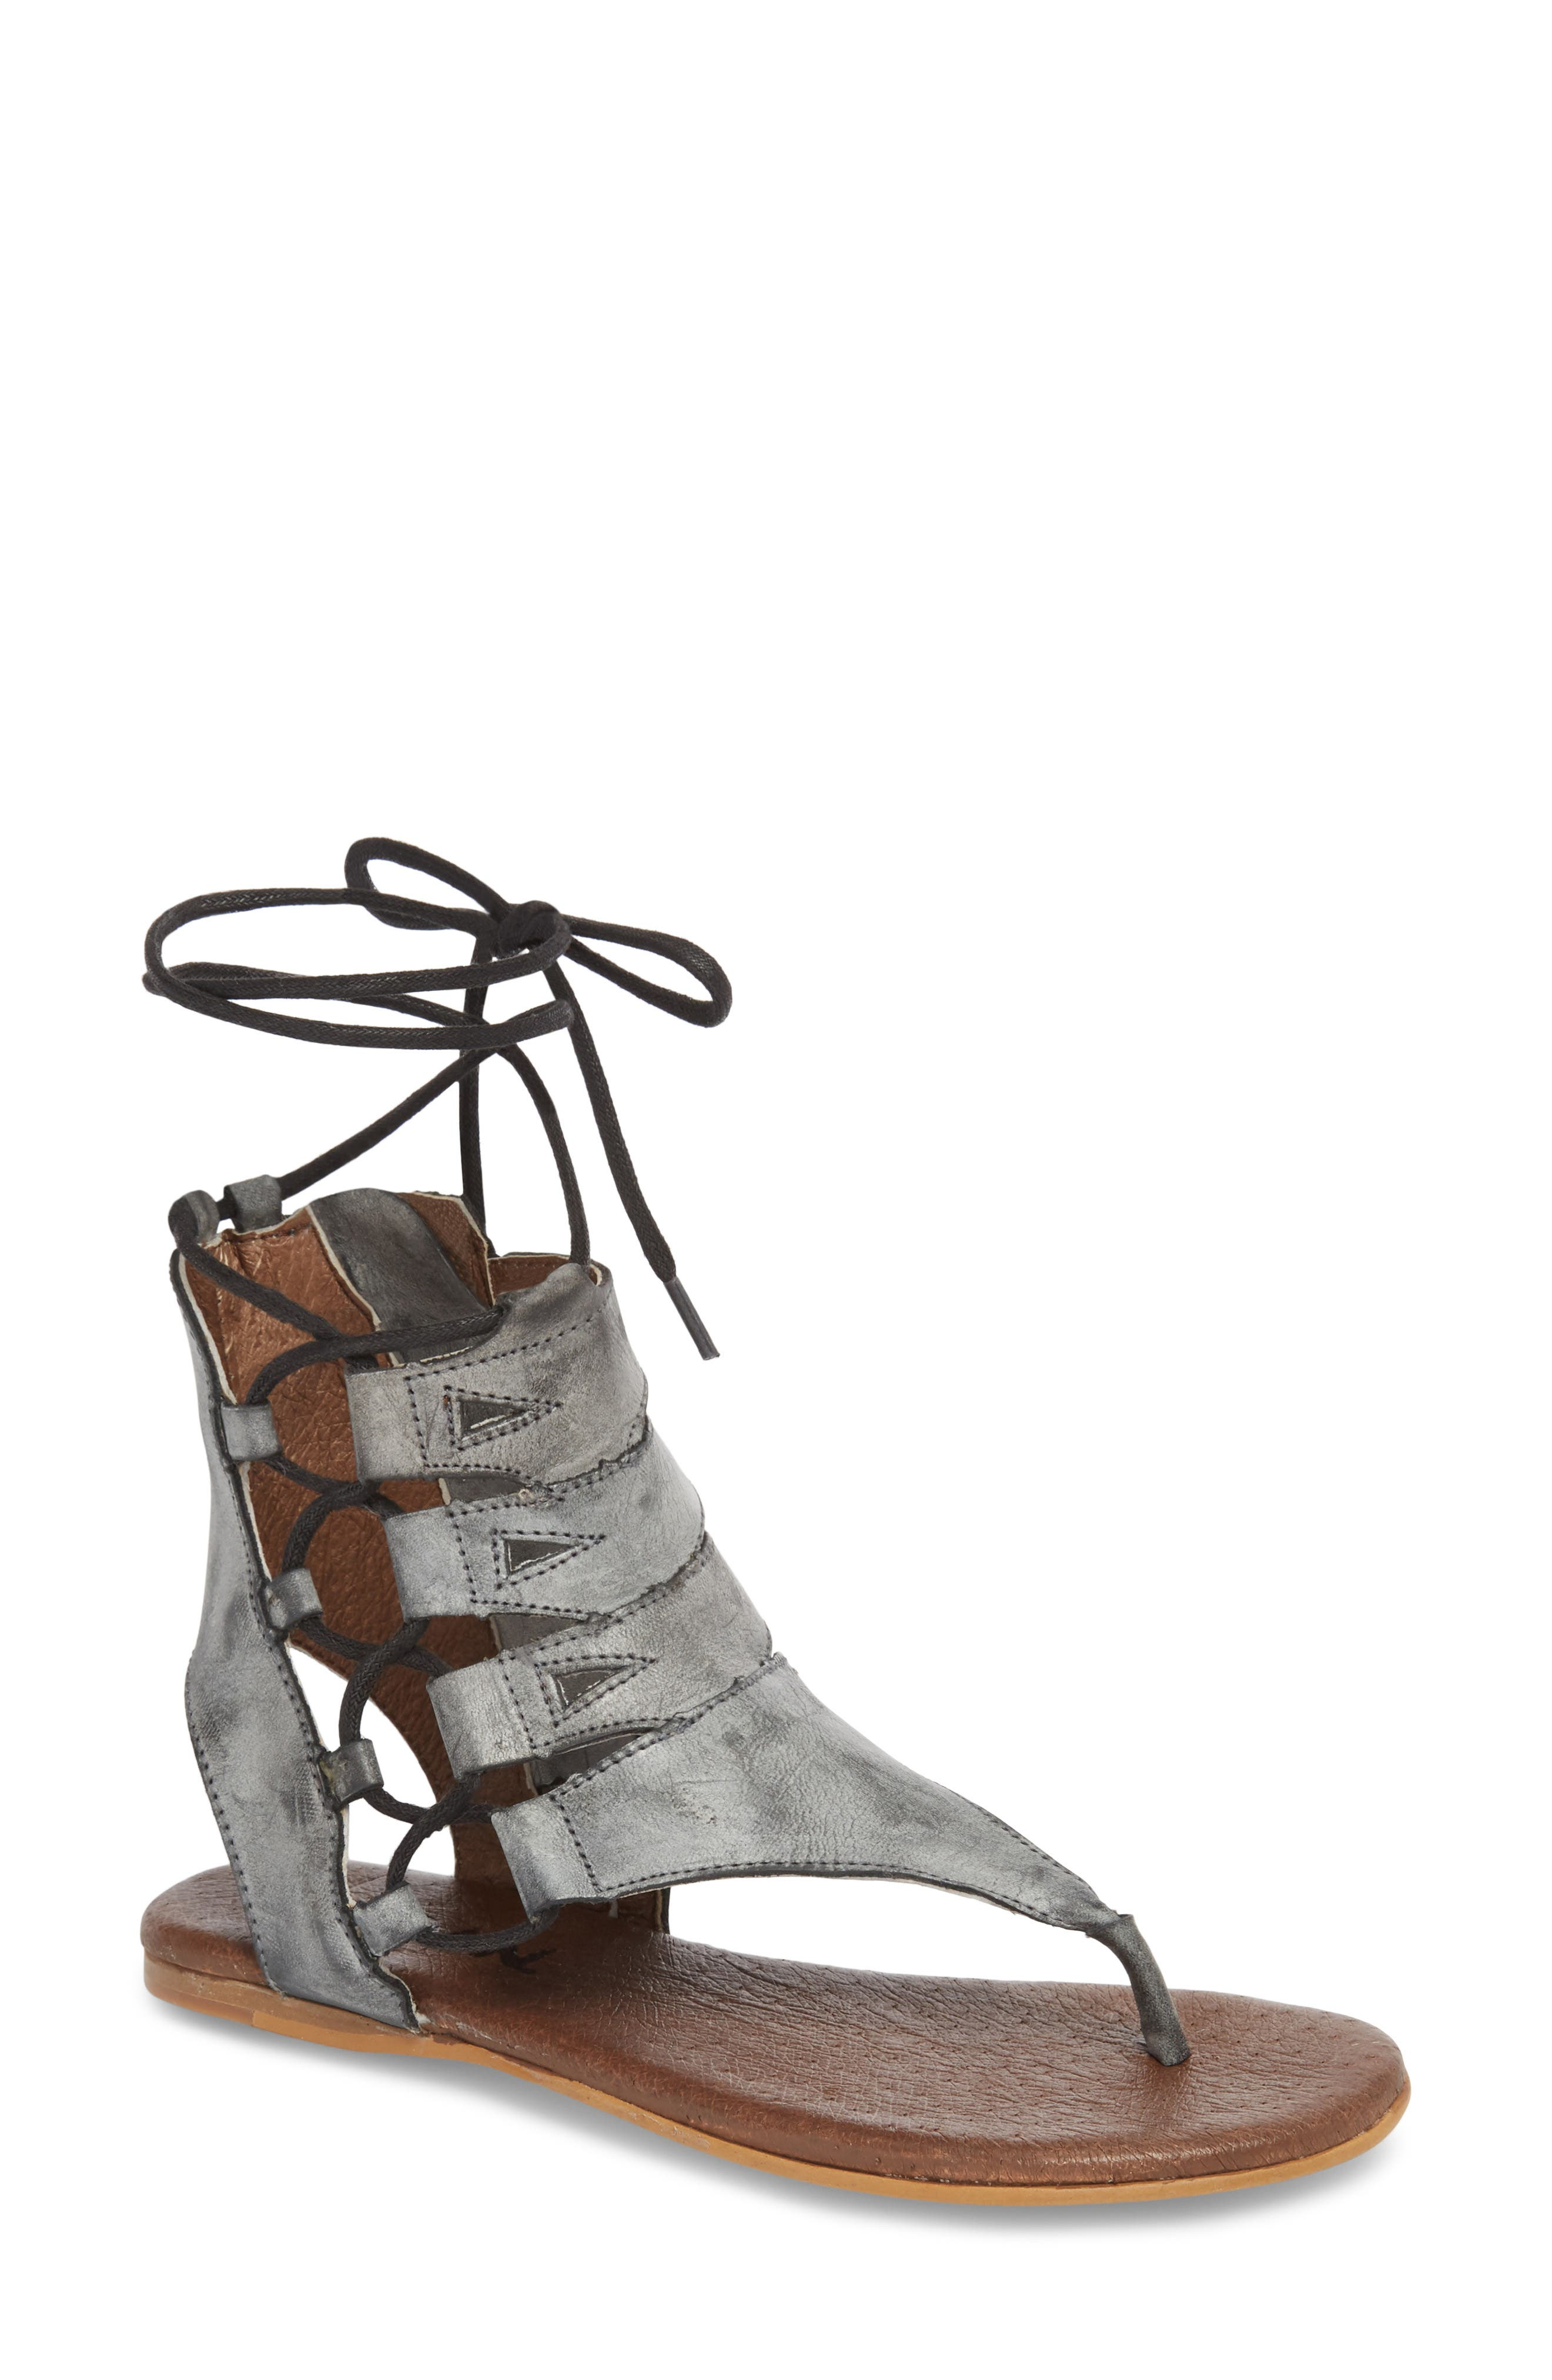 Rosalinda Tall Sandal,                         Main,                         color, 001